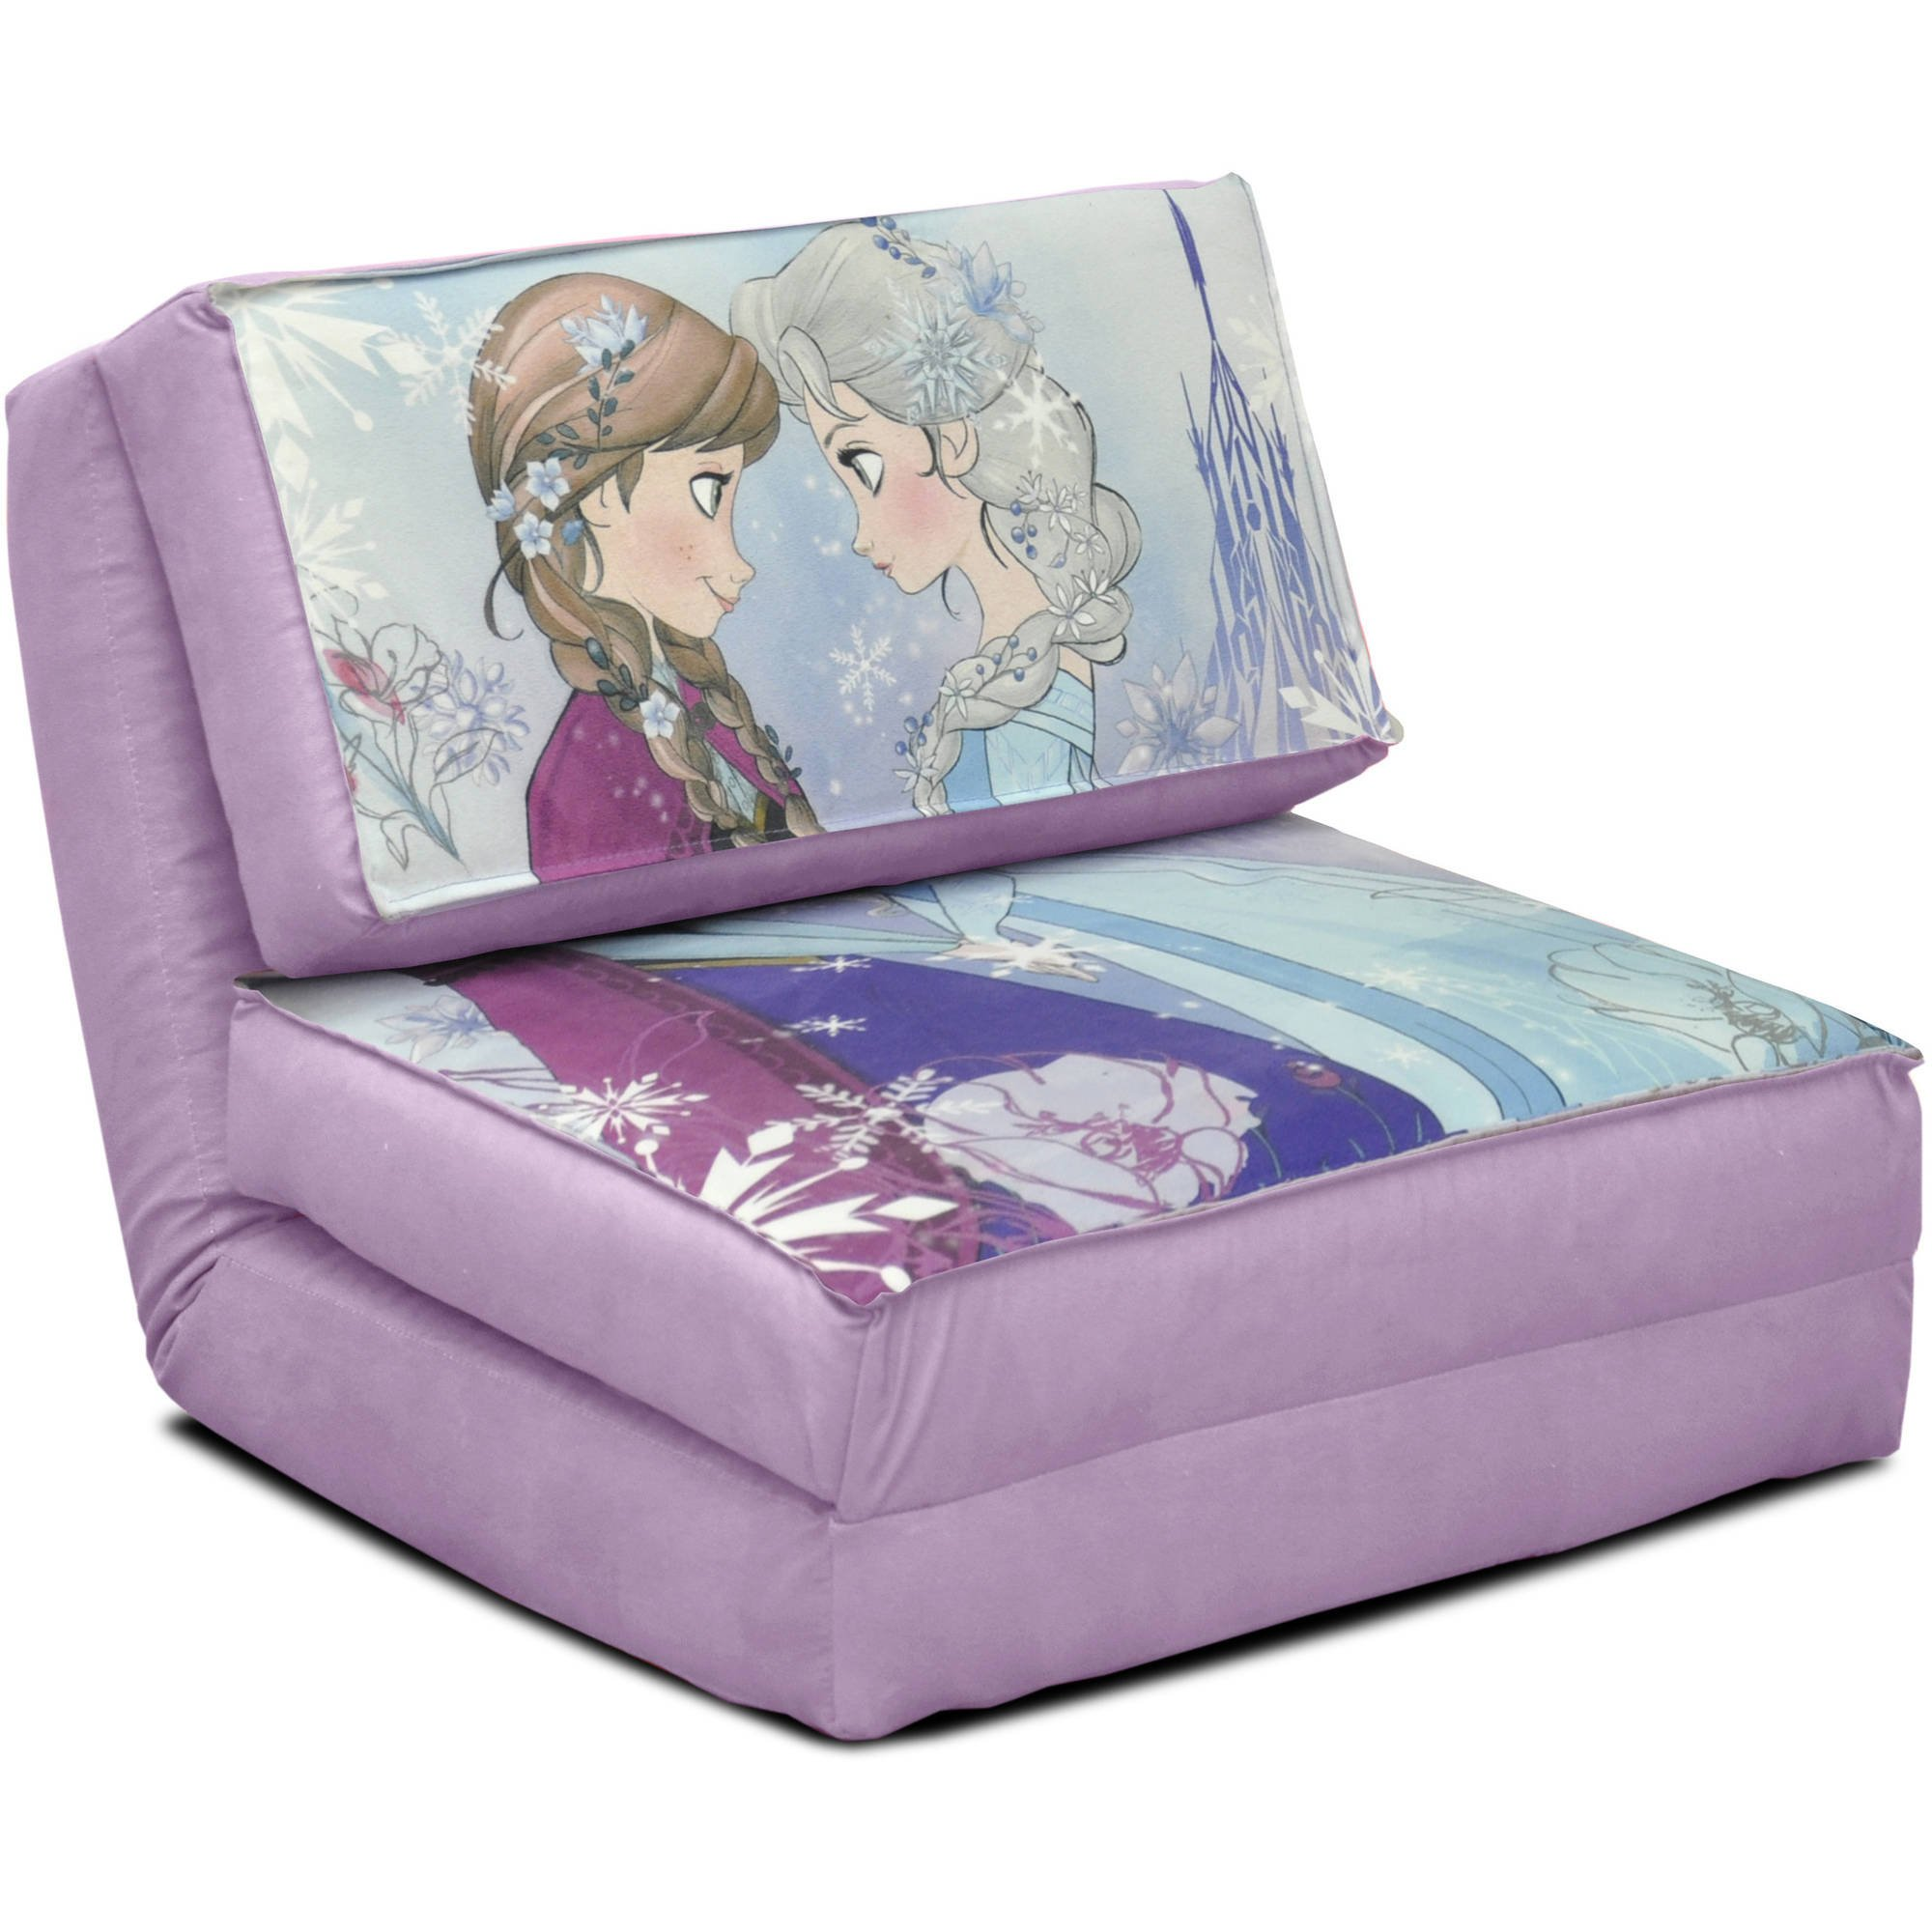 Disney Frozen Anna And Elsa Flip Chair Tween Sofa Kids Room Furniture Home New Girls Bedroom Bed Seat, Chair easily converts into a bed, Product Dimensions (L x W x H):28.50 x 29.53 x 23.00 Inches